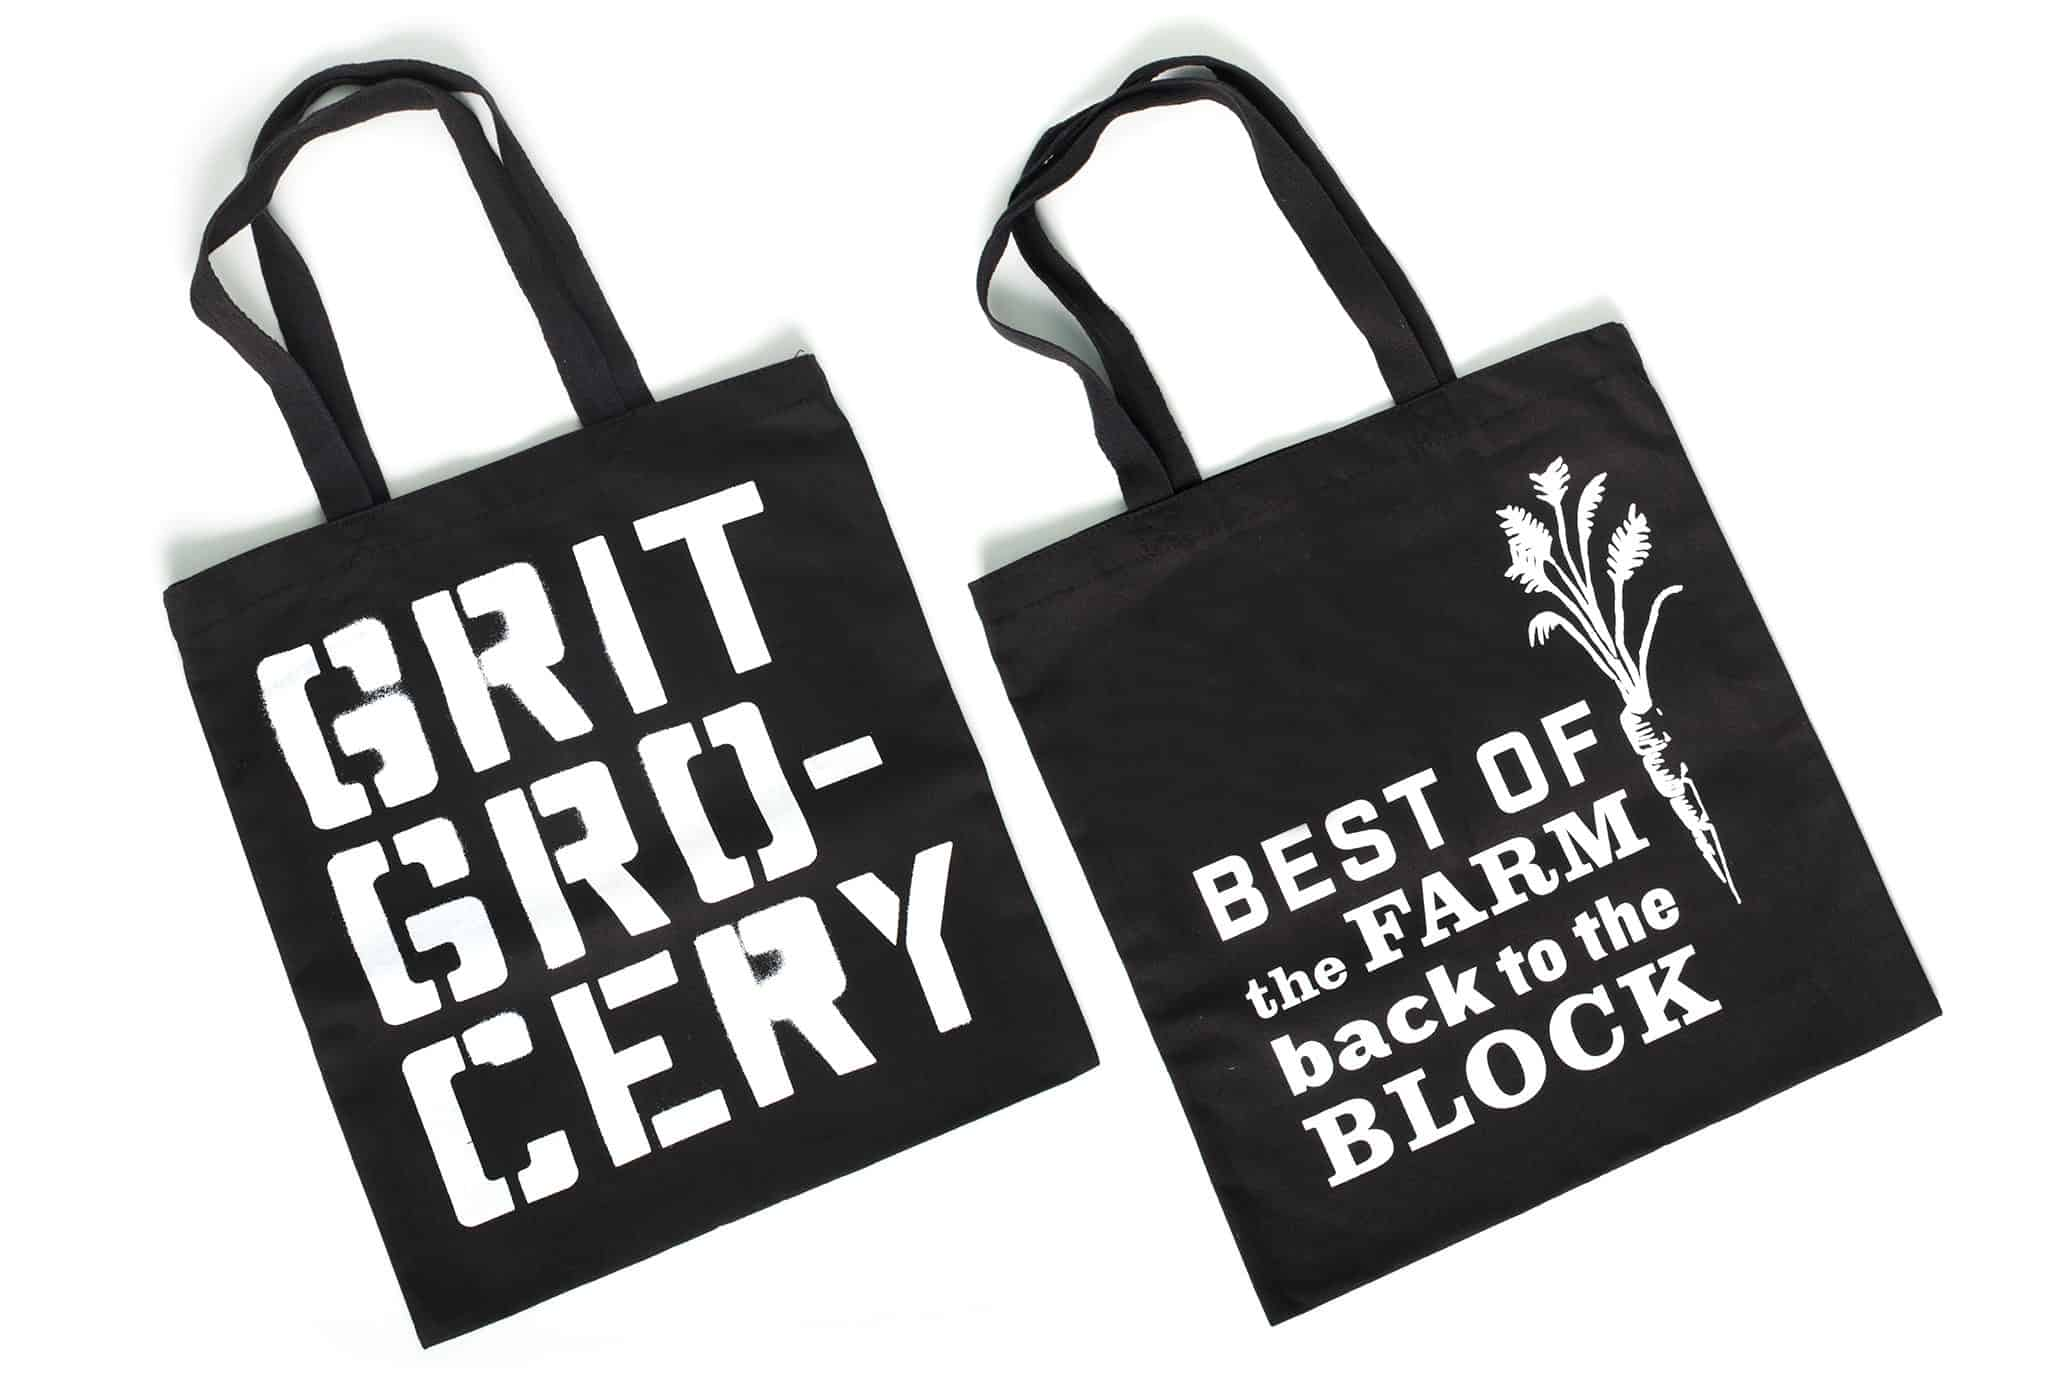 Silkscreened reusable tote bags for Grit Grocery | Designed by Field of Study: A branding and graphic design consultancy | Houston TX | Jennifer Blanco & John Earles